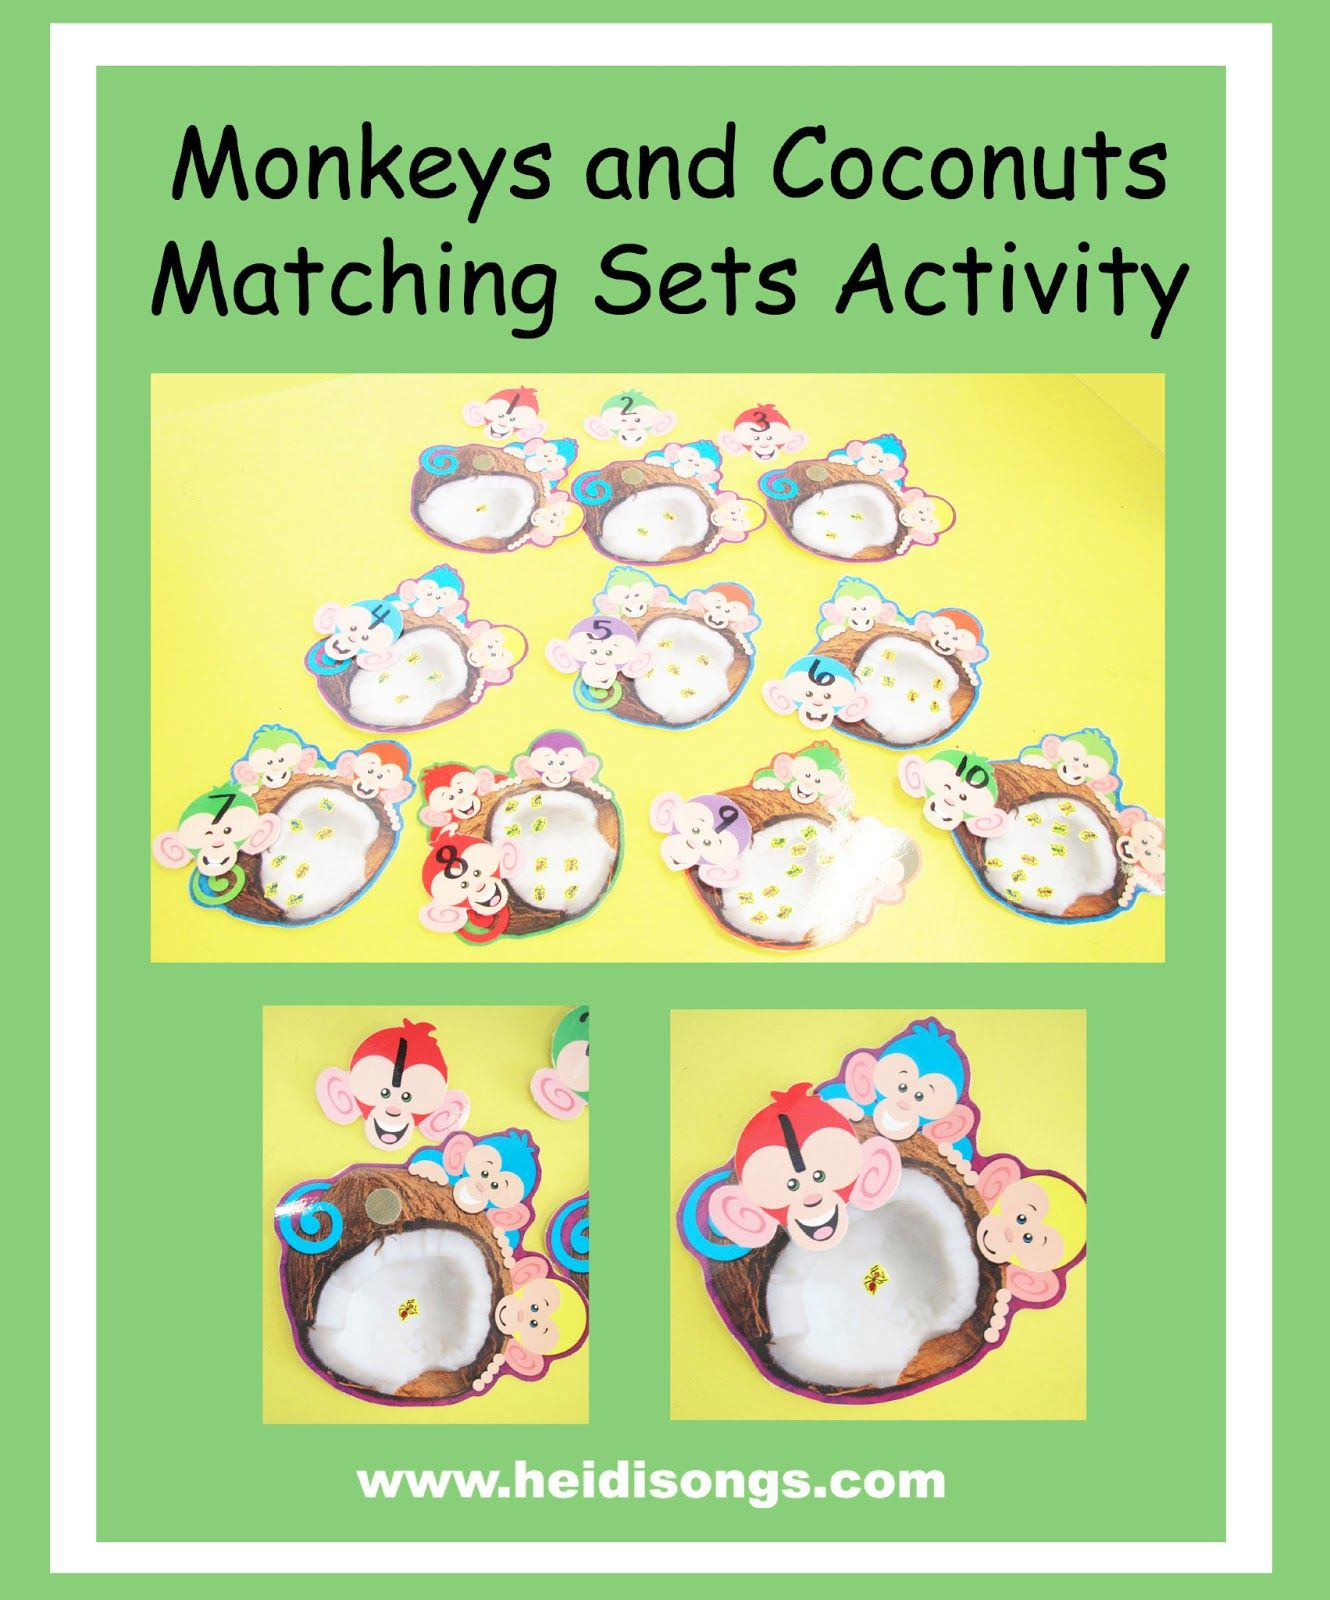 Monkeys And Coconuts Match Sets Activity